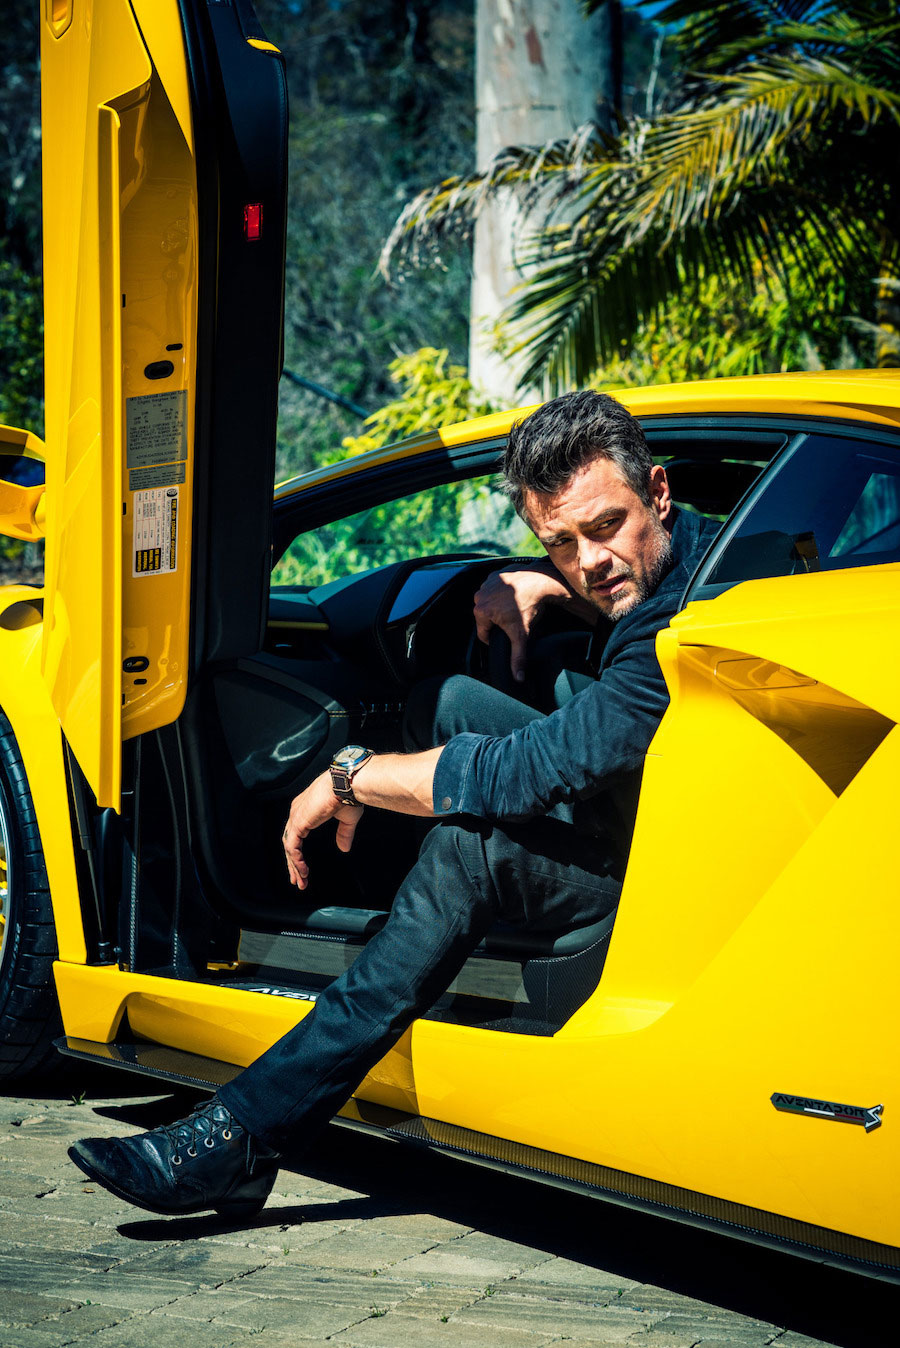 Duhamel wears a John Varvatos shirt and jacket, Nudie Jeans black jeans, Panerai watch, and his own shirt and shoes while sitting in the driver's seat of the 2017 Lamborghini Aventador S Coupé.